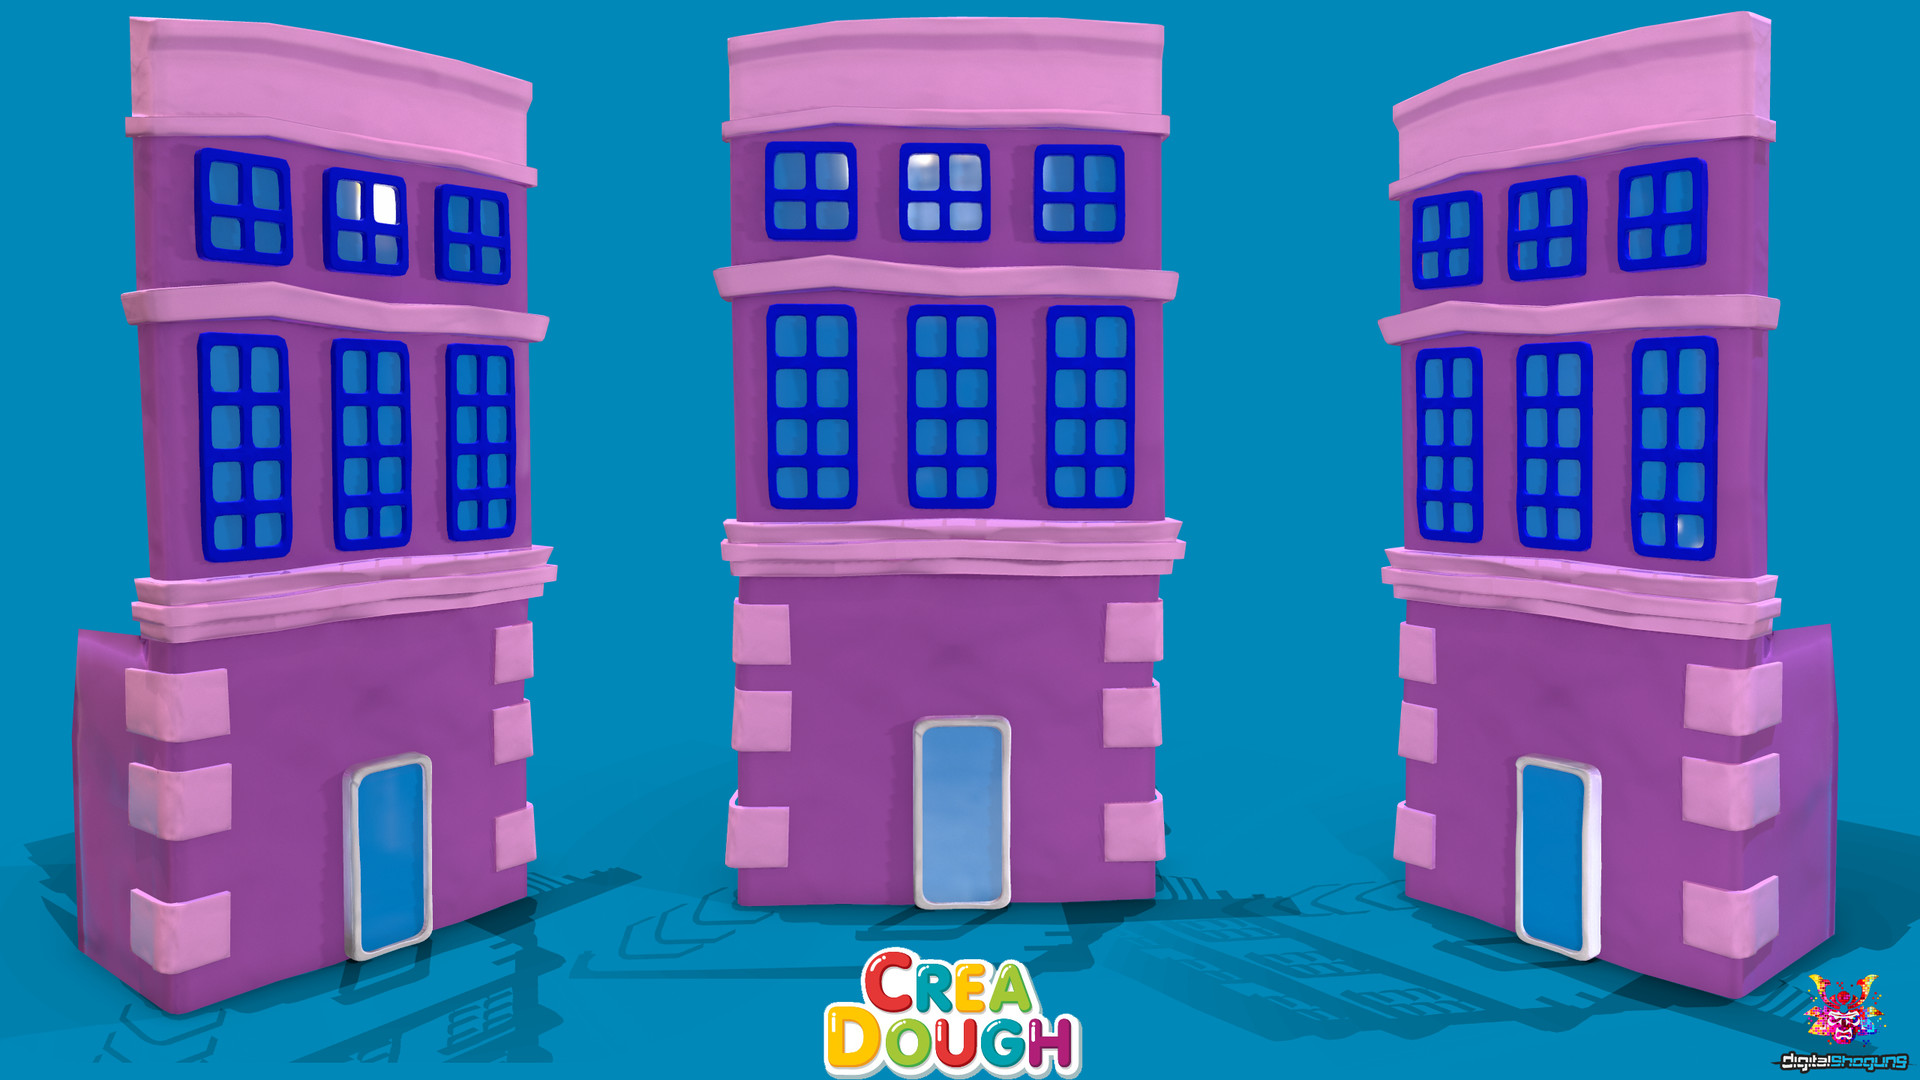 Martin giles small pink building